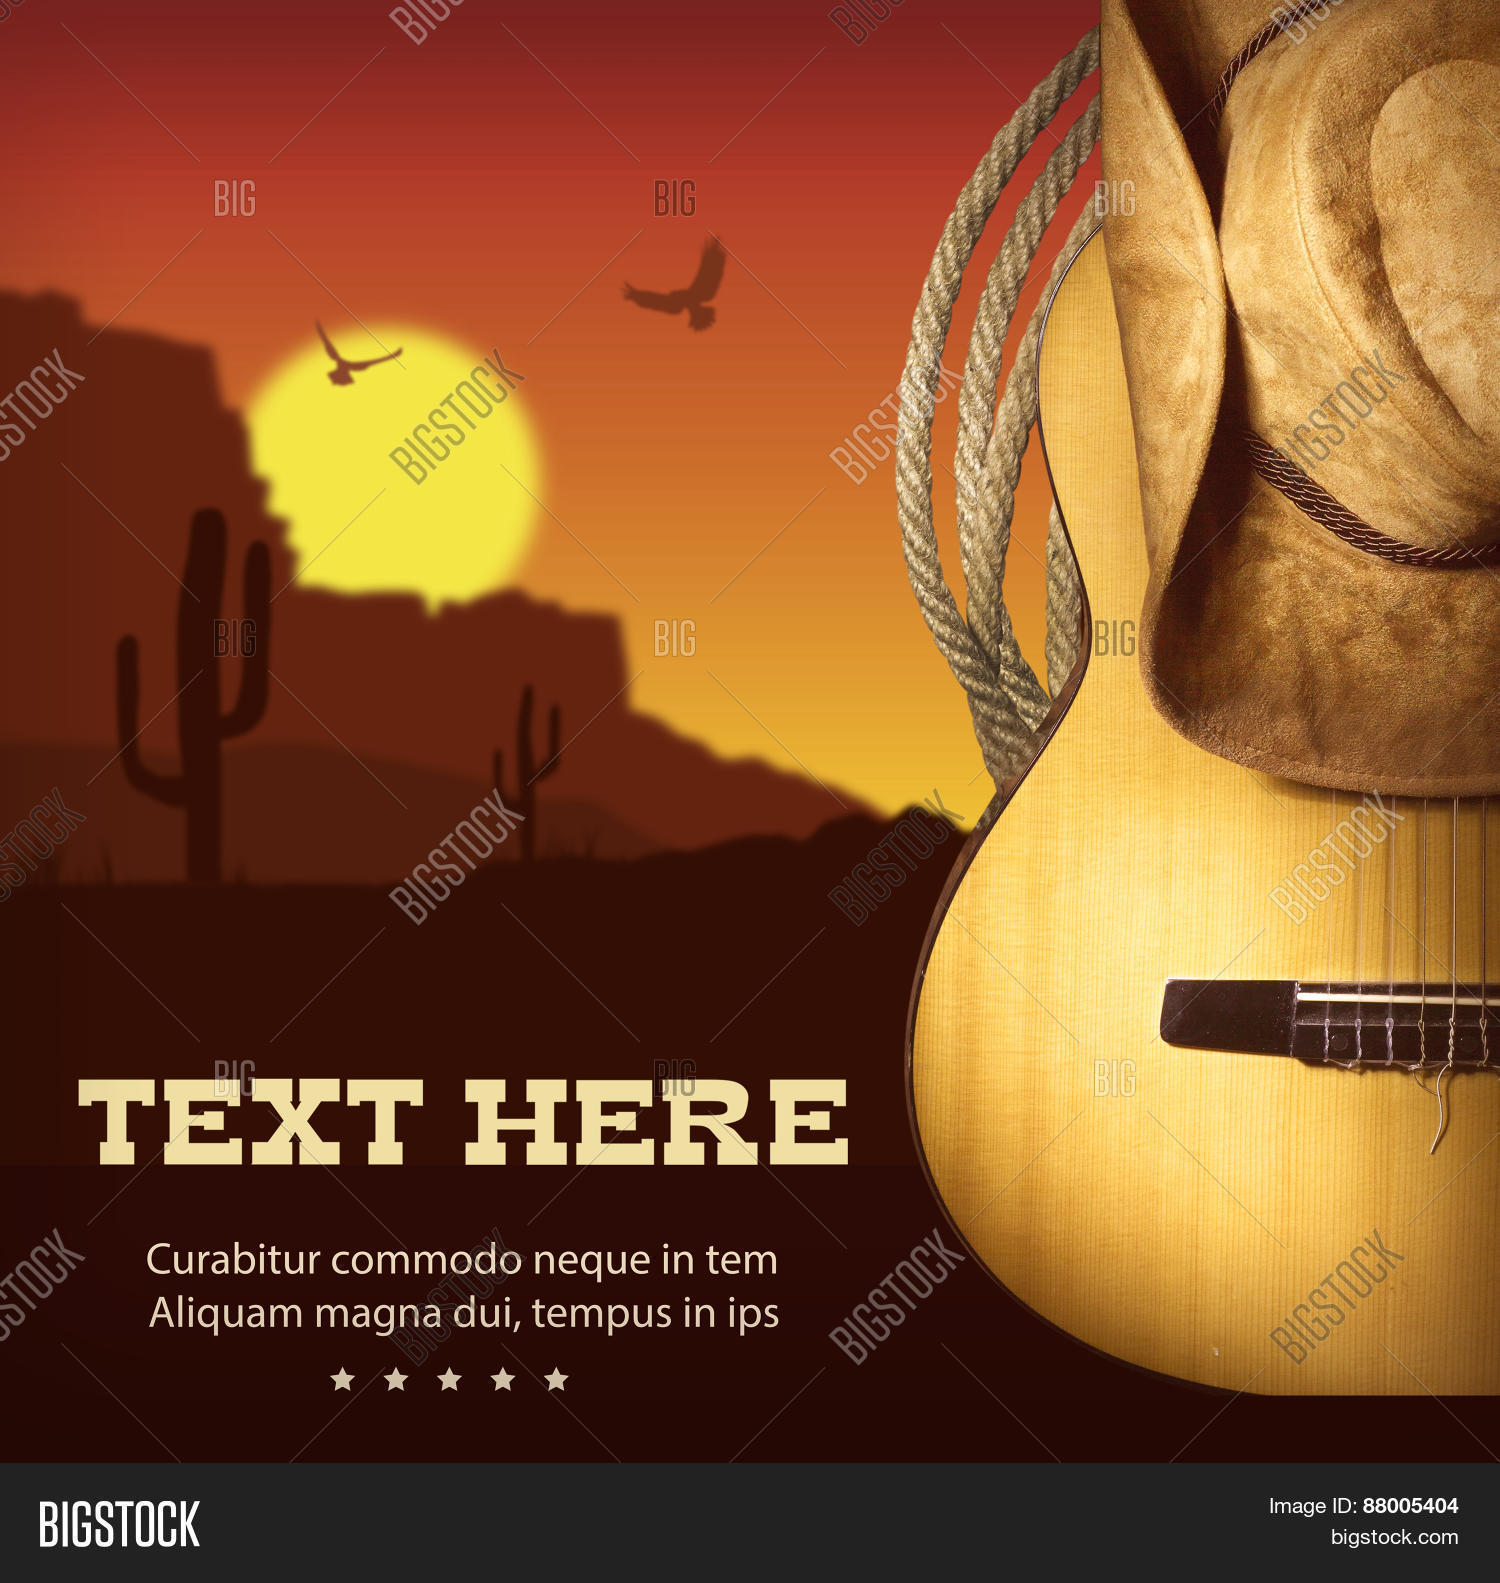 Country Music Wallpaper: American Country Music Image & Photo (Free Trial)